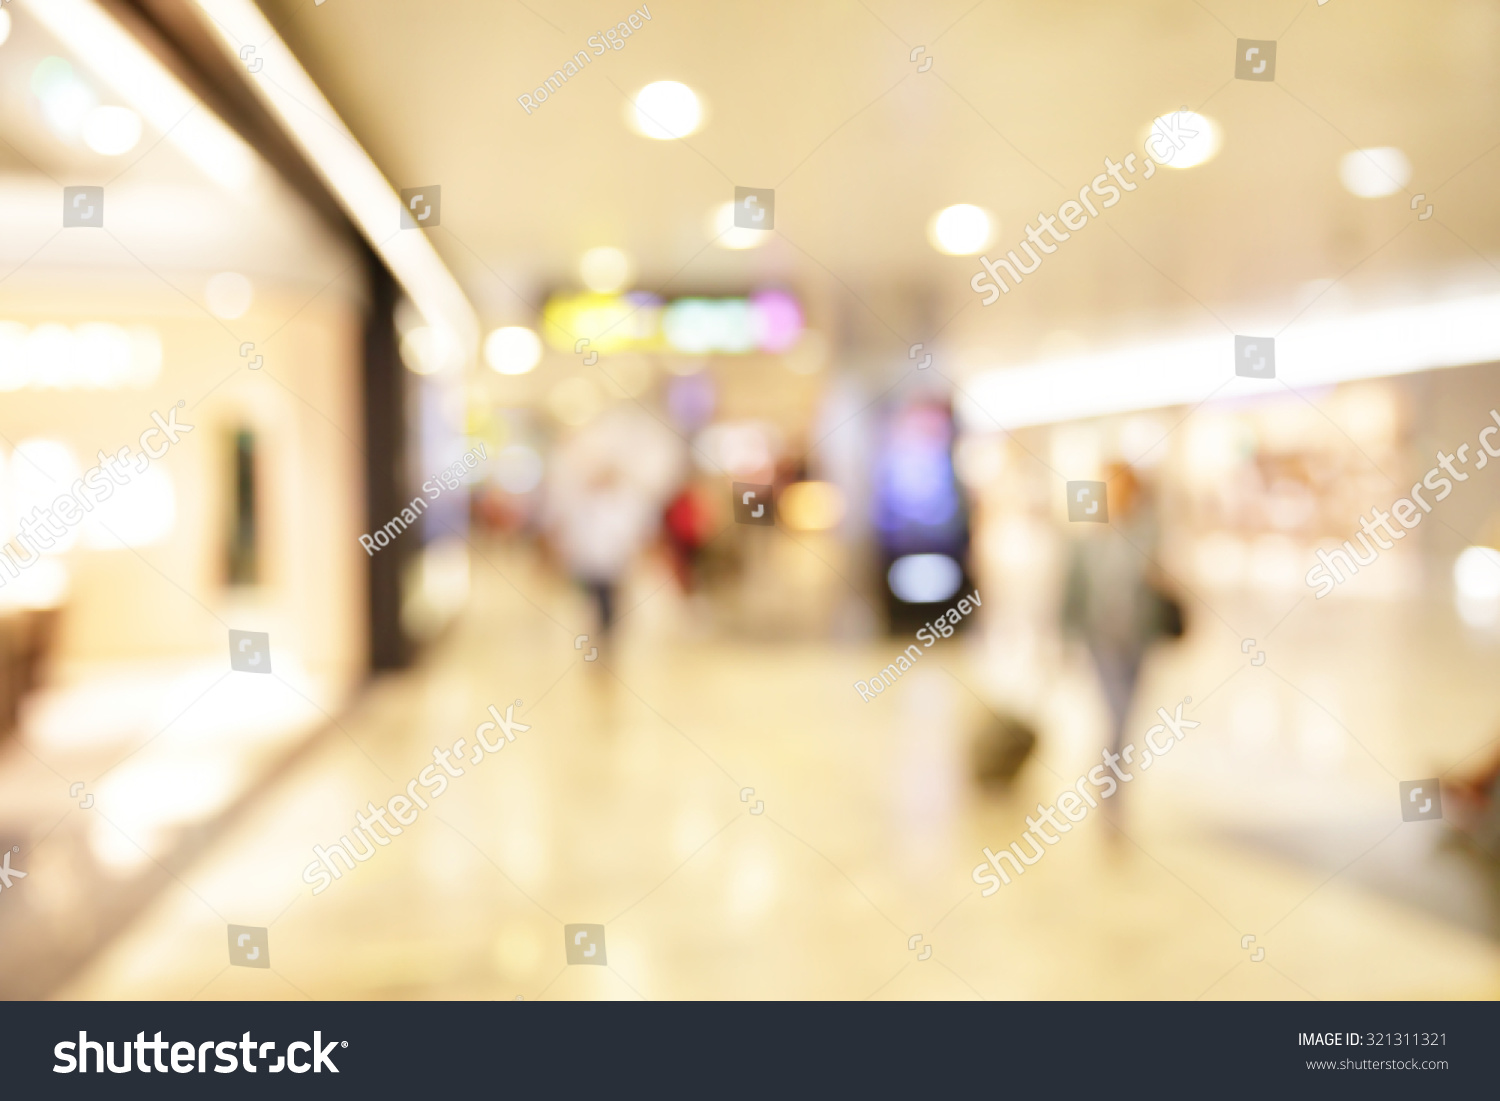 Duty free shop windows in airport defocused blured background